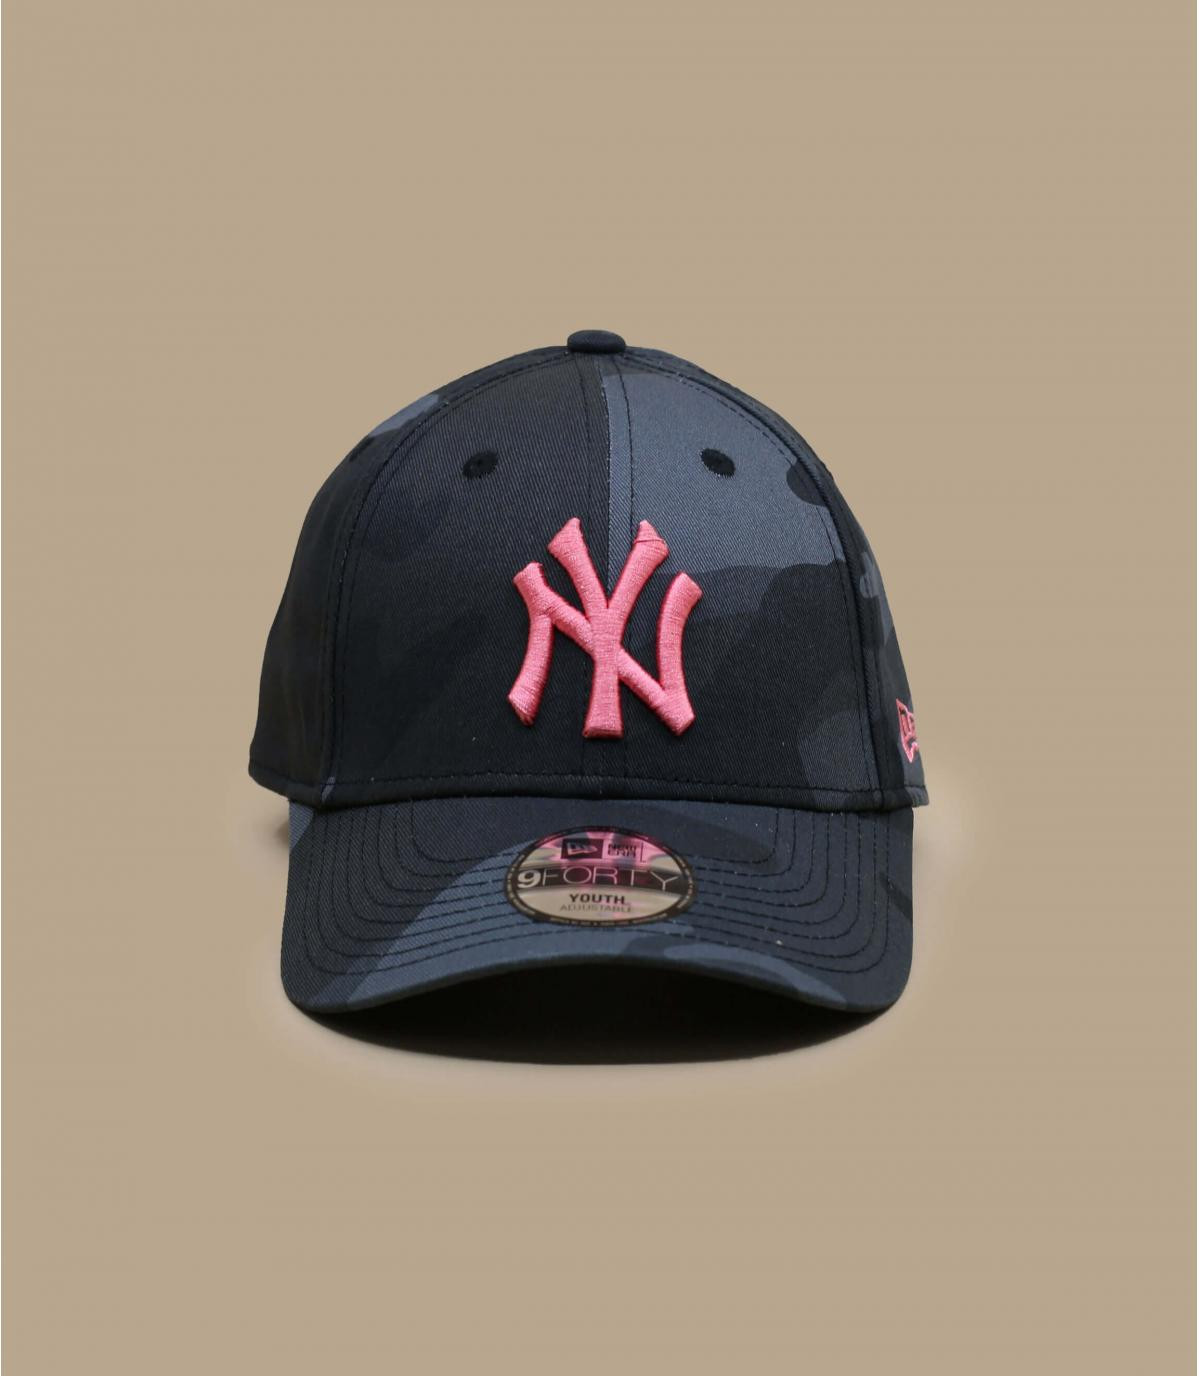 Détails Casquette Kids All Over Camo 940 NY midnight pink - image 2